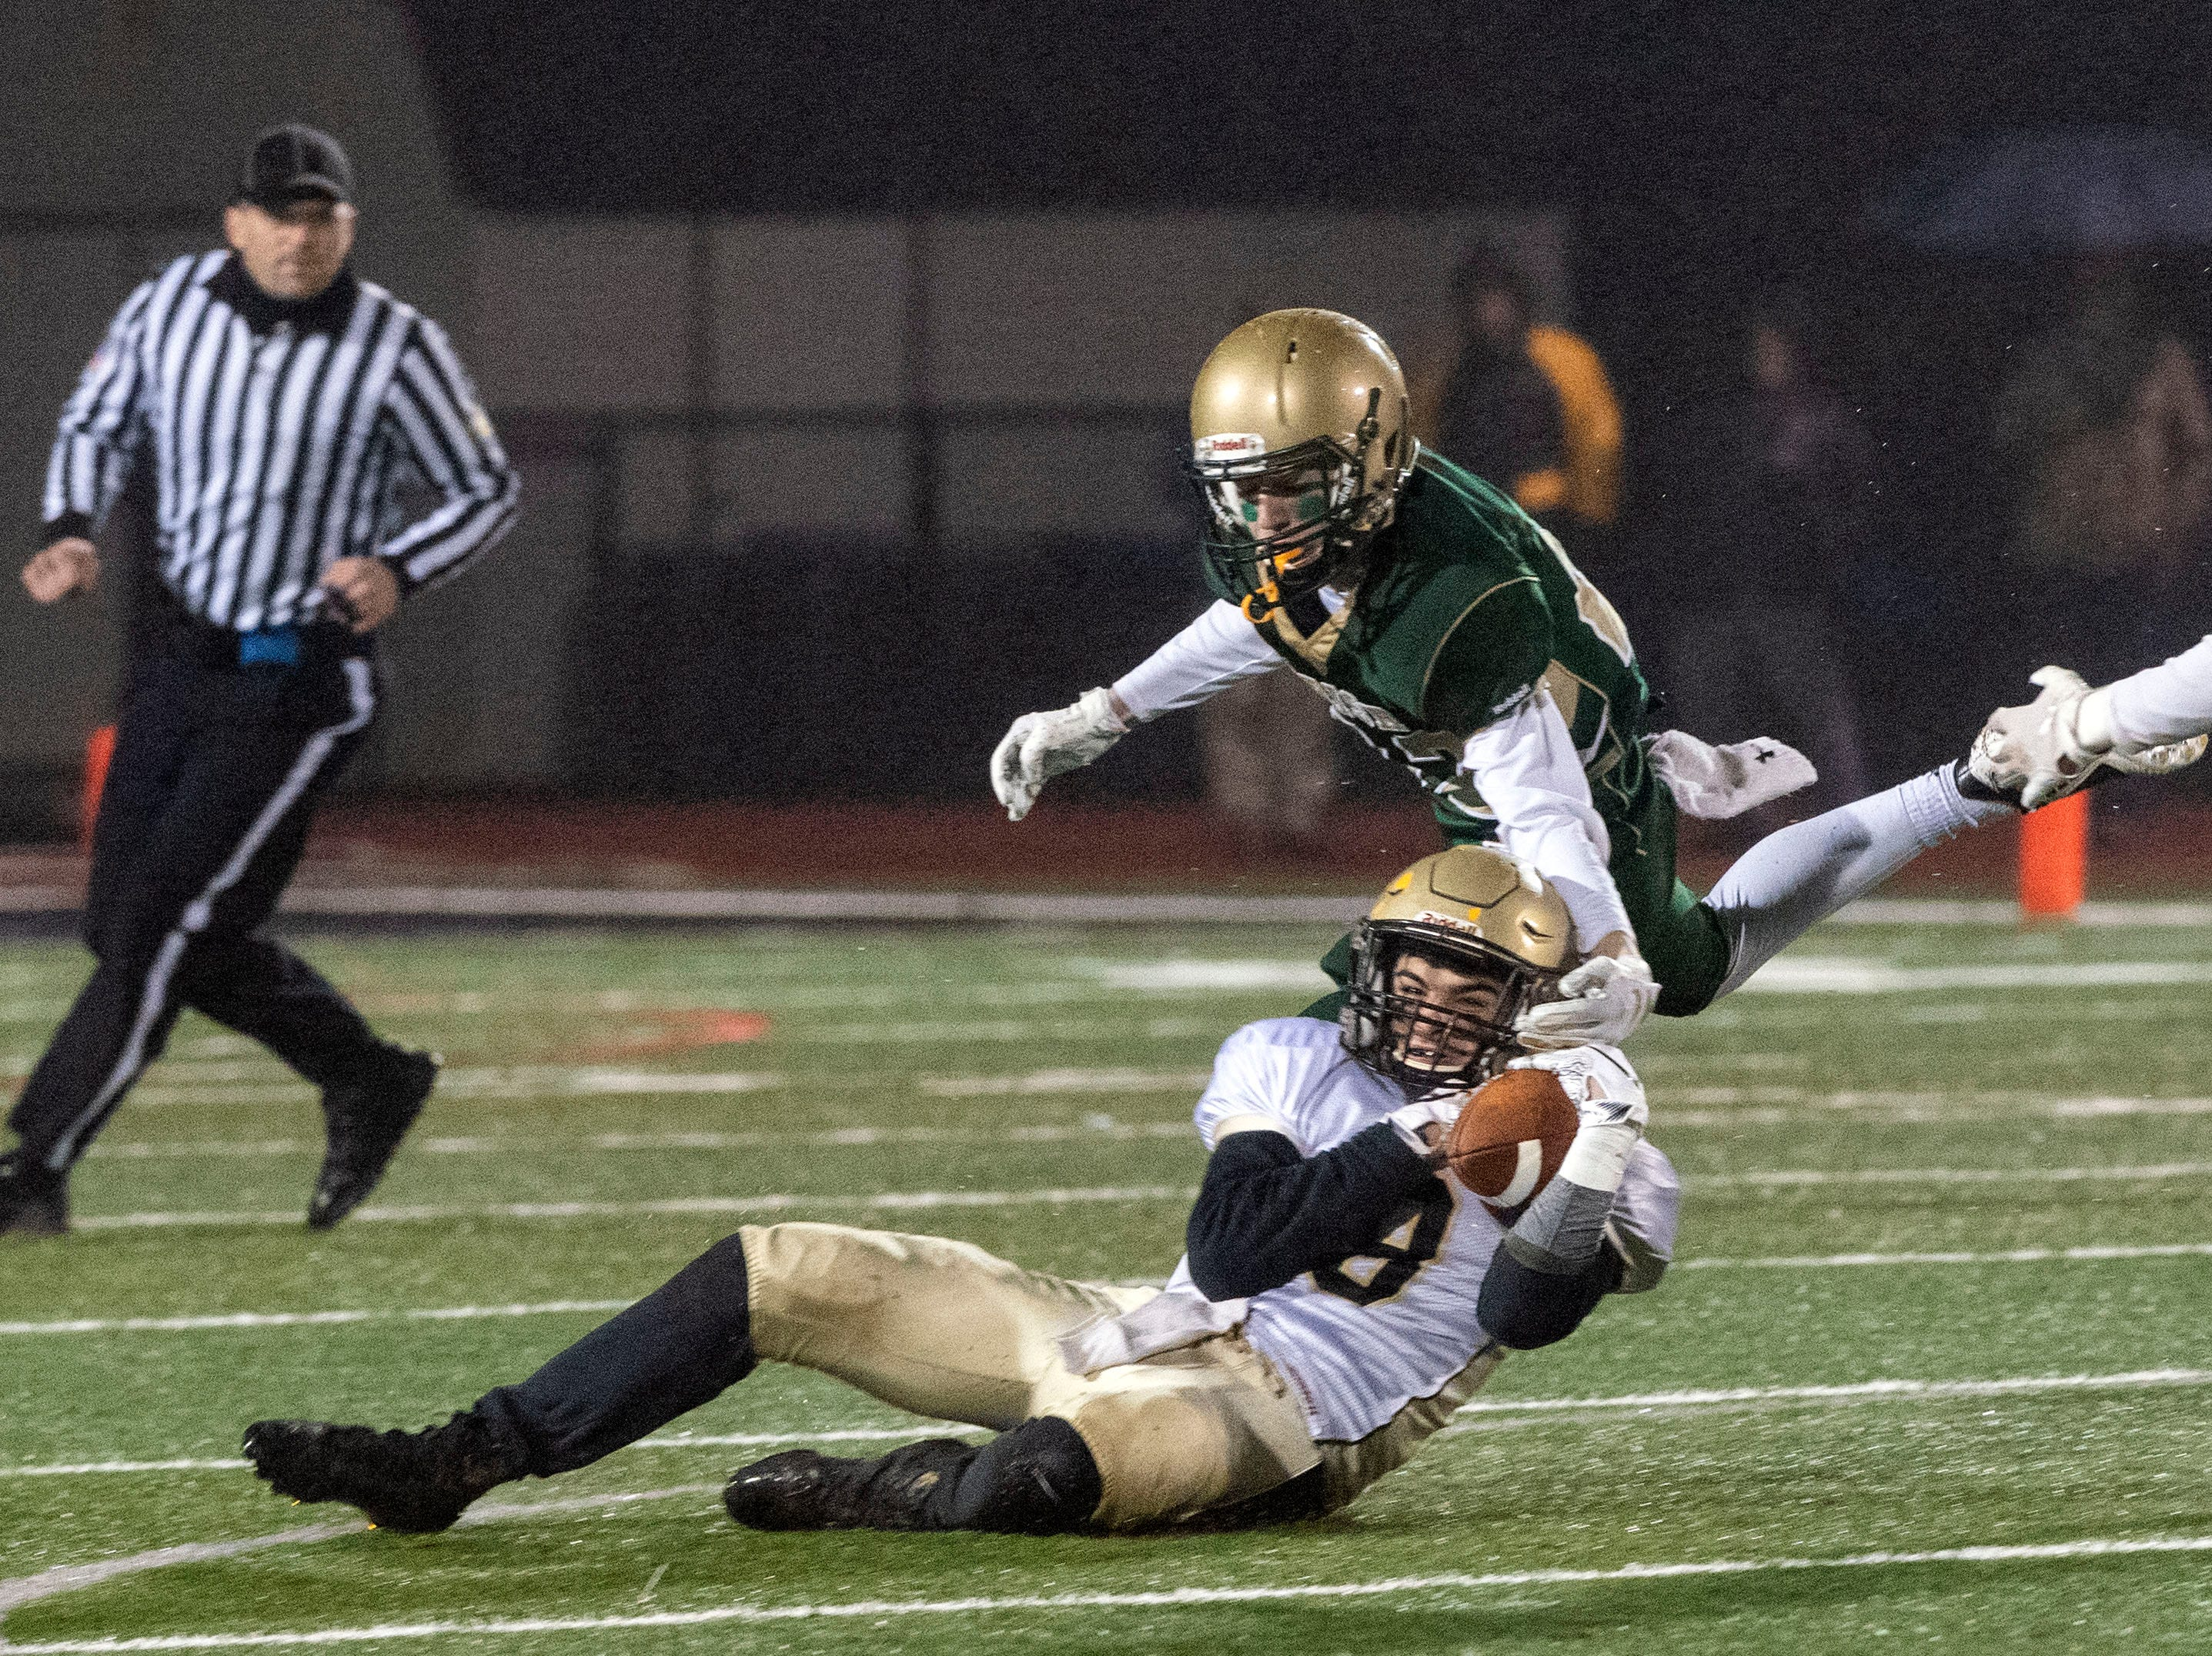 Delone Catholic's Marcello Malvone (8) pulls down a pass during the District III 2A championship game at South Western High School on Nov. 9, 2018. The York Catholic Fighting Irish beat the Delone Catholic Squires in overtime, 28-21.